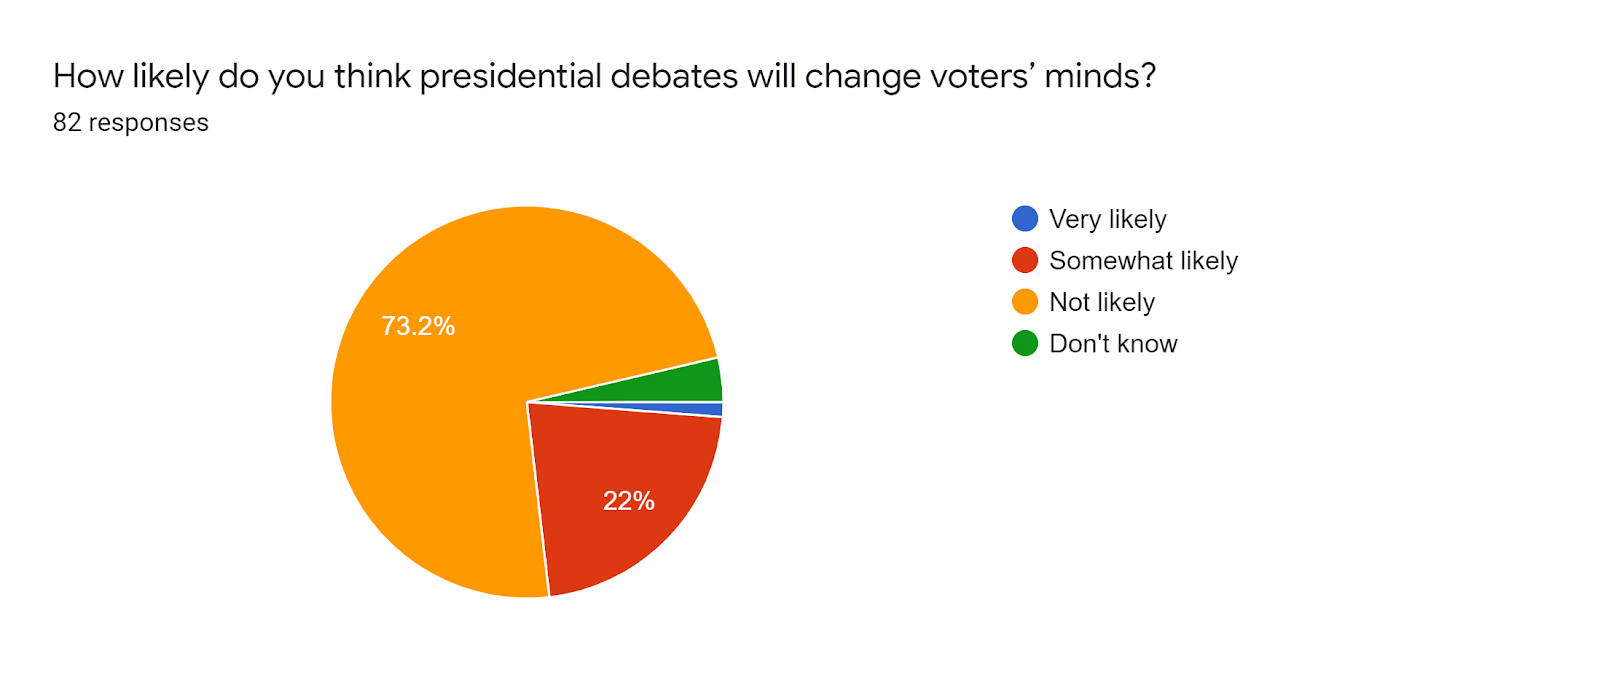 Forms response chart. Question title: How likely do you think presidential debates will change voters' minds?. Number of responses: 82 responses.